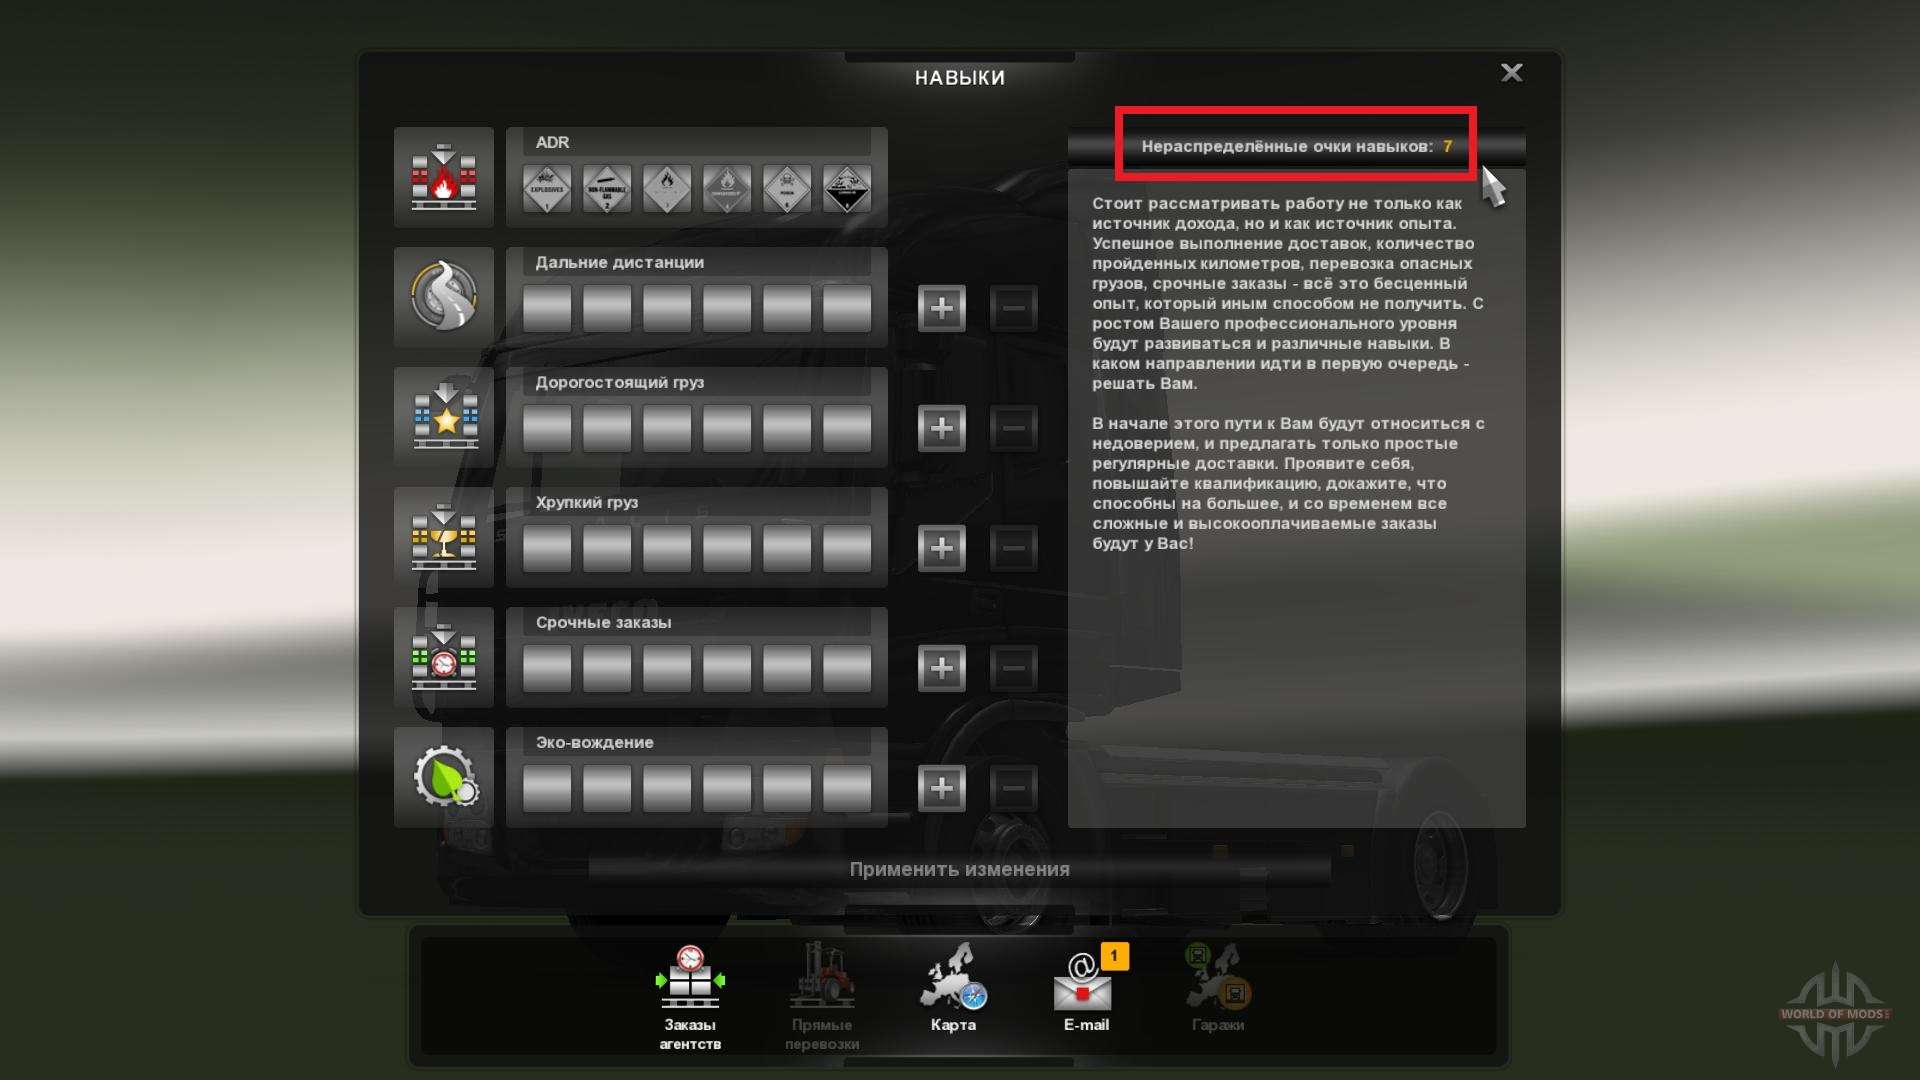 Mod on experience and money v1 2 for Euro Truck Simulator 2